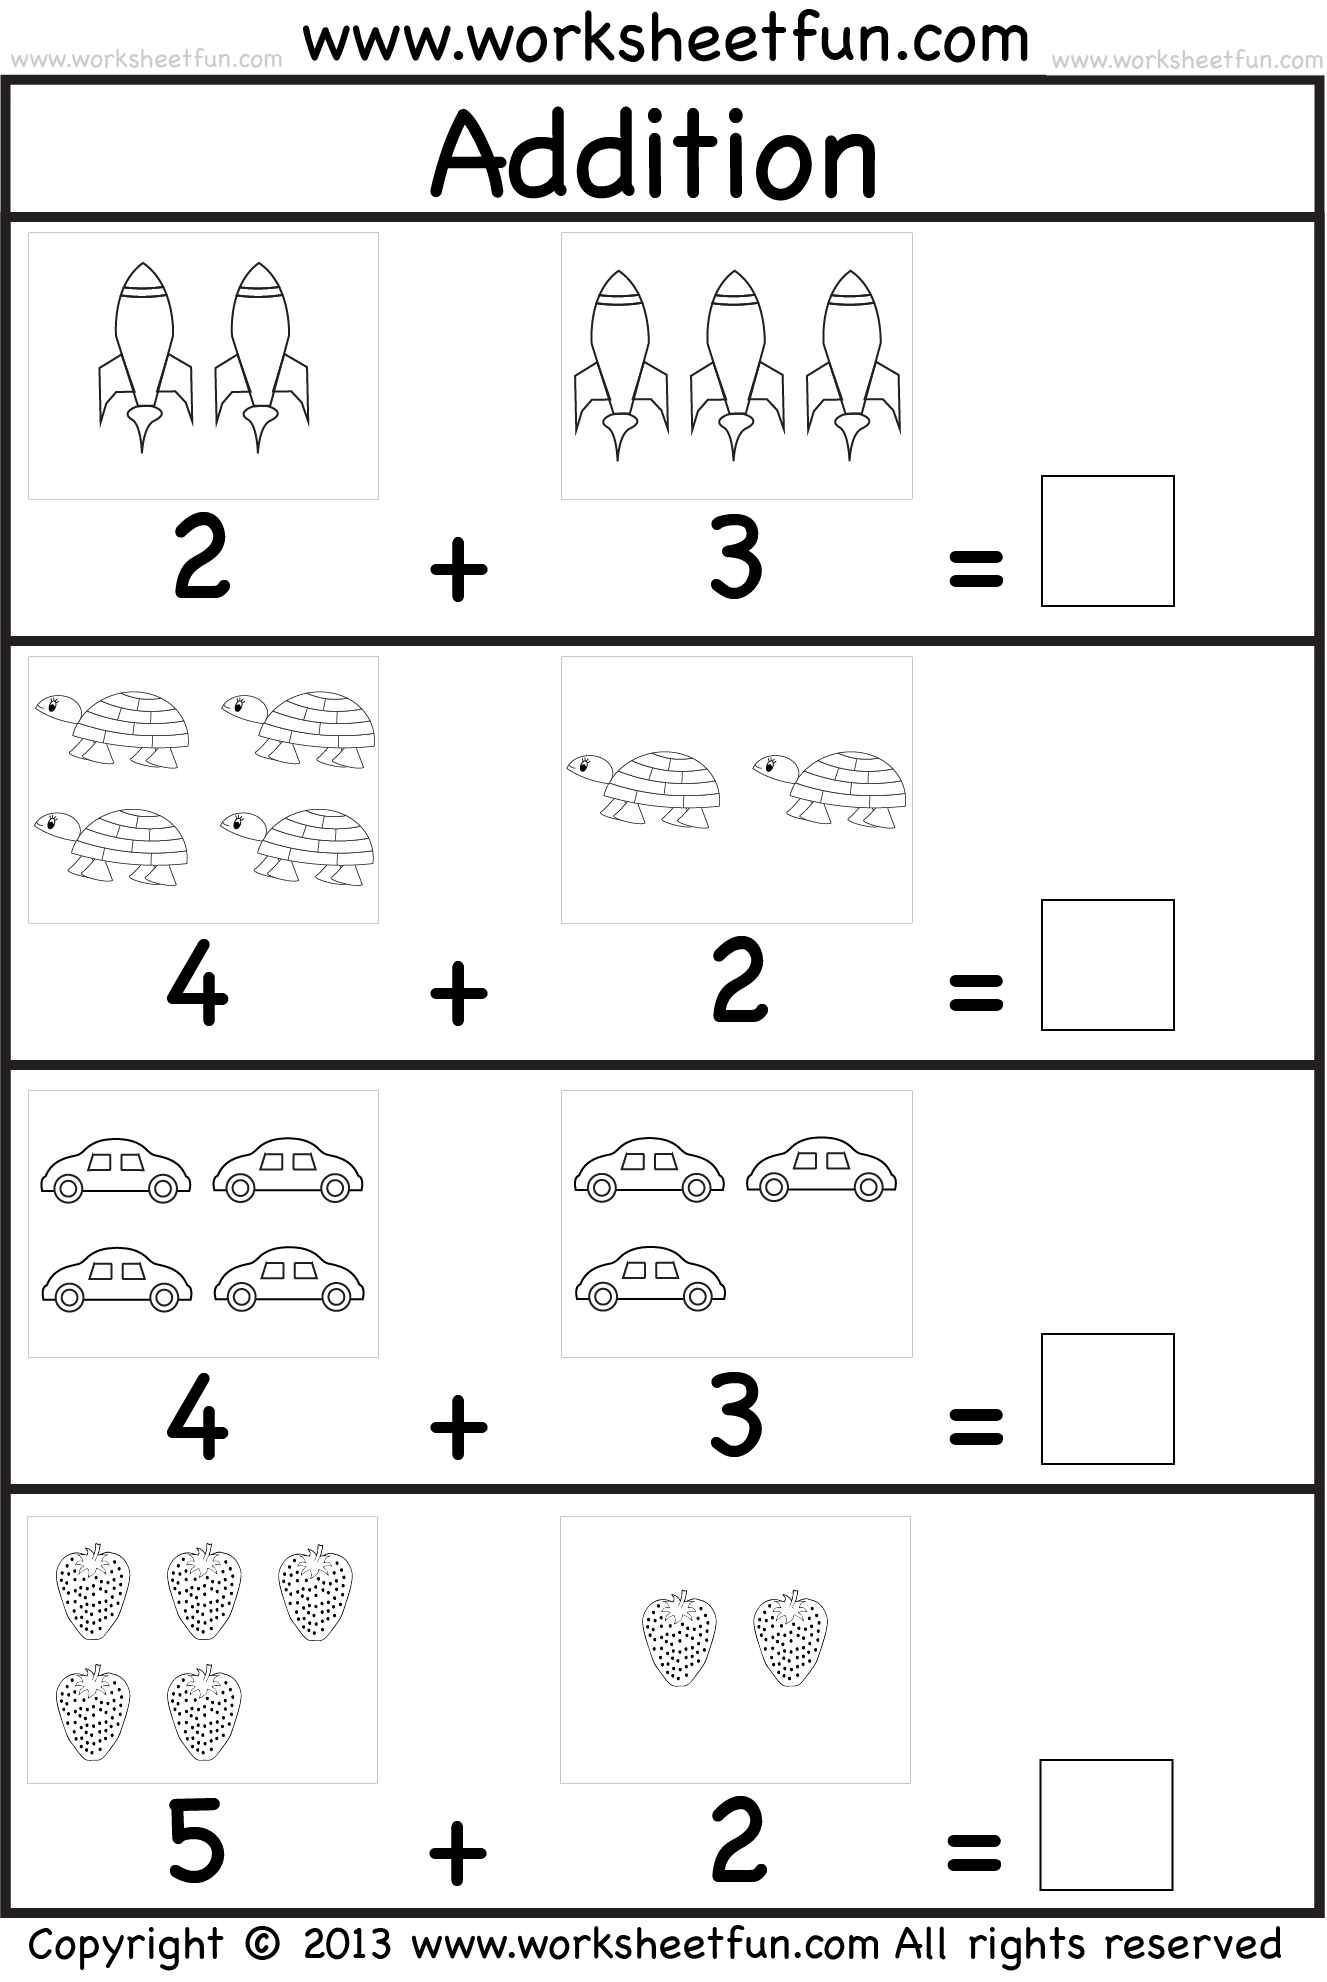 addition worksheet this site has great free worksheets for  addition worksheet this site has great free worksheets for everything from  abcs to math